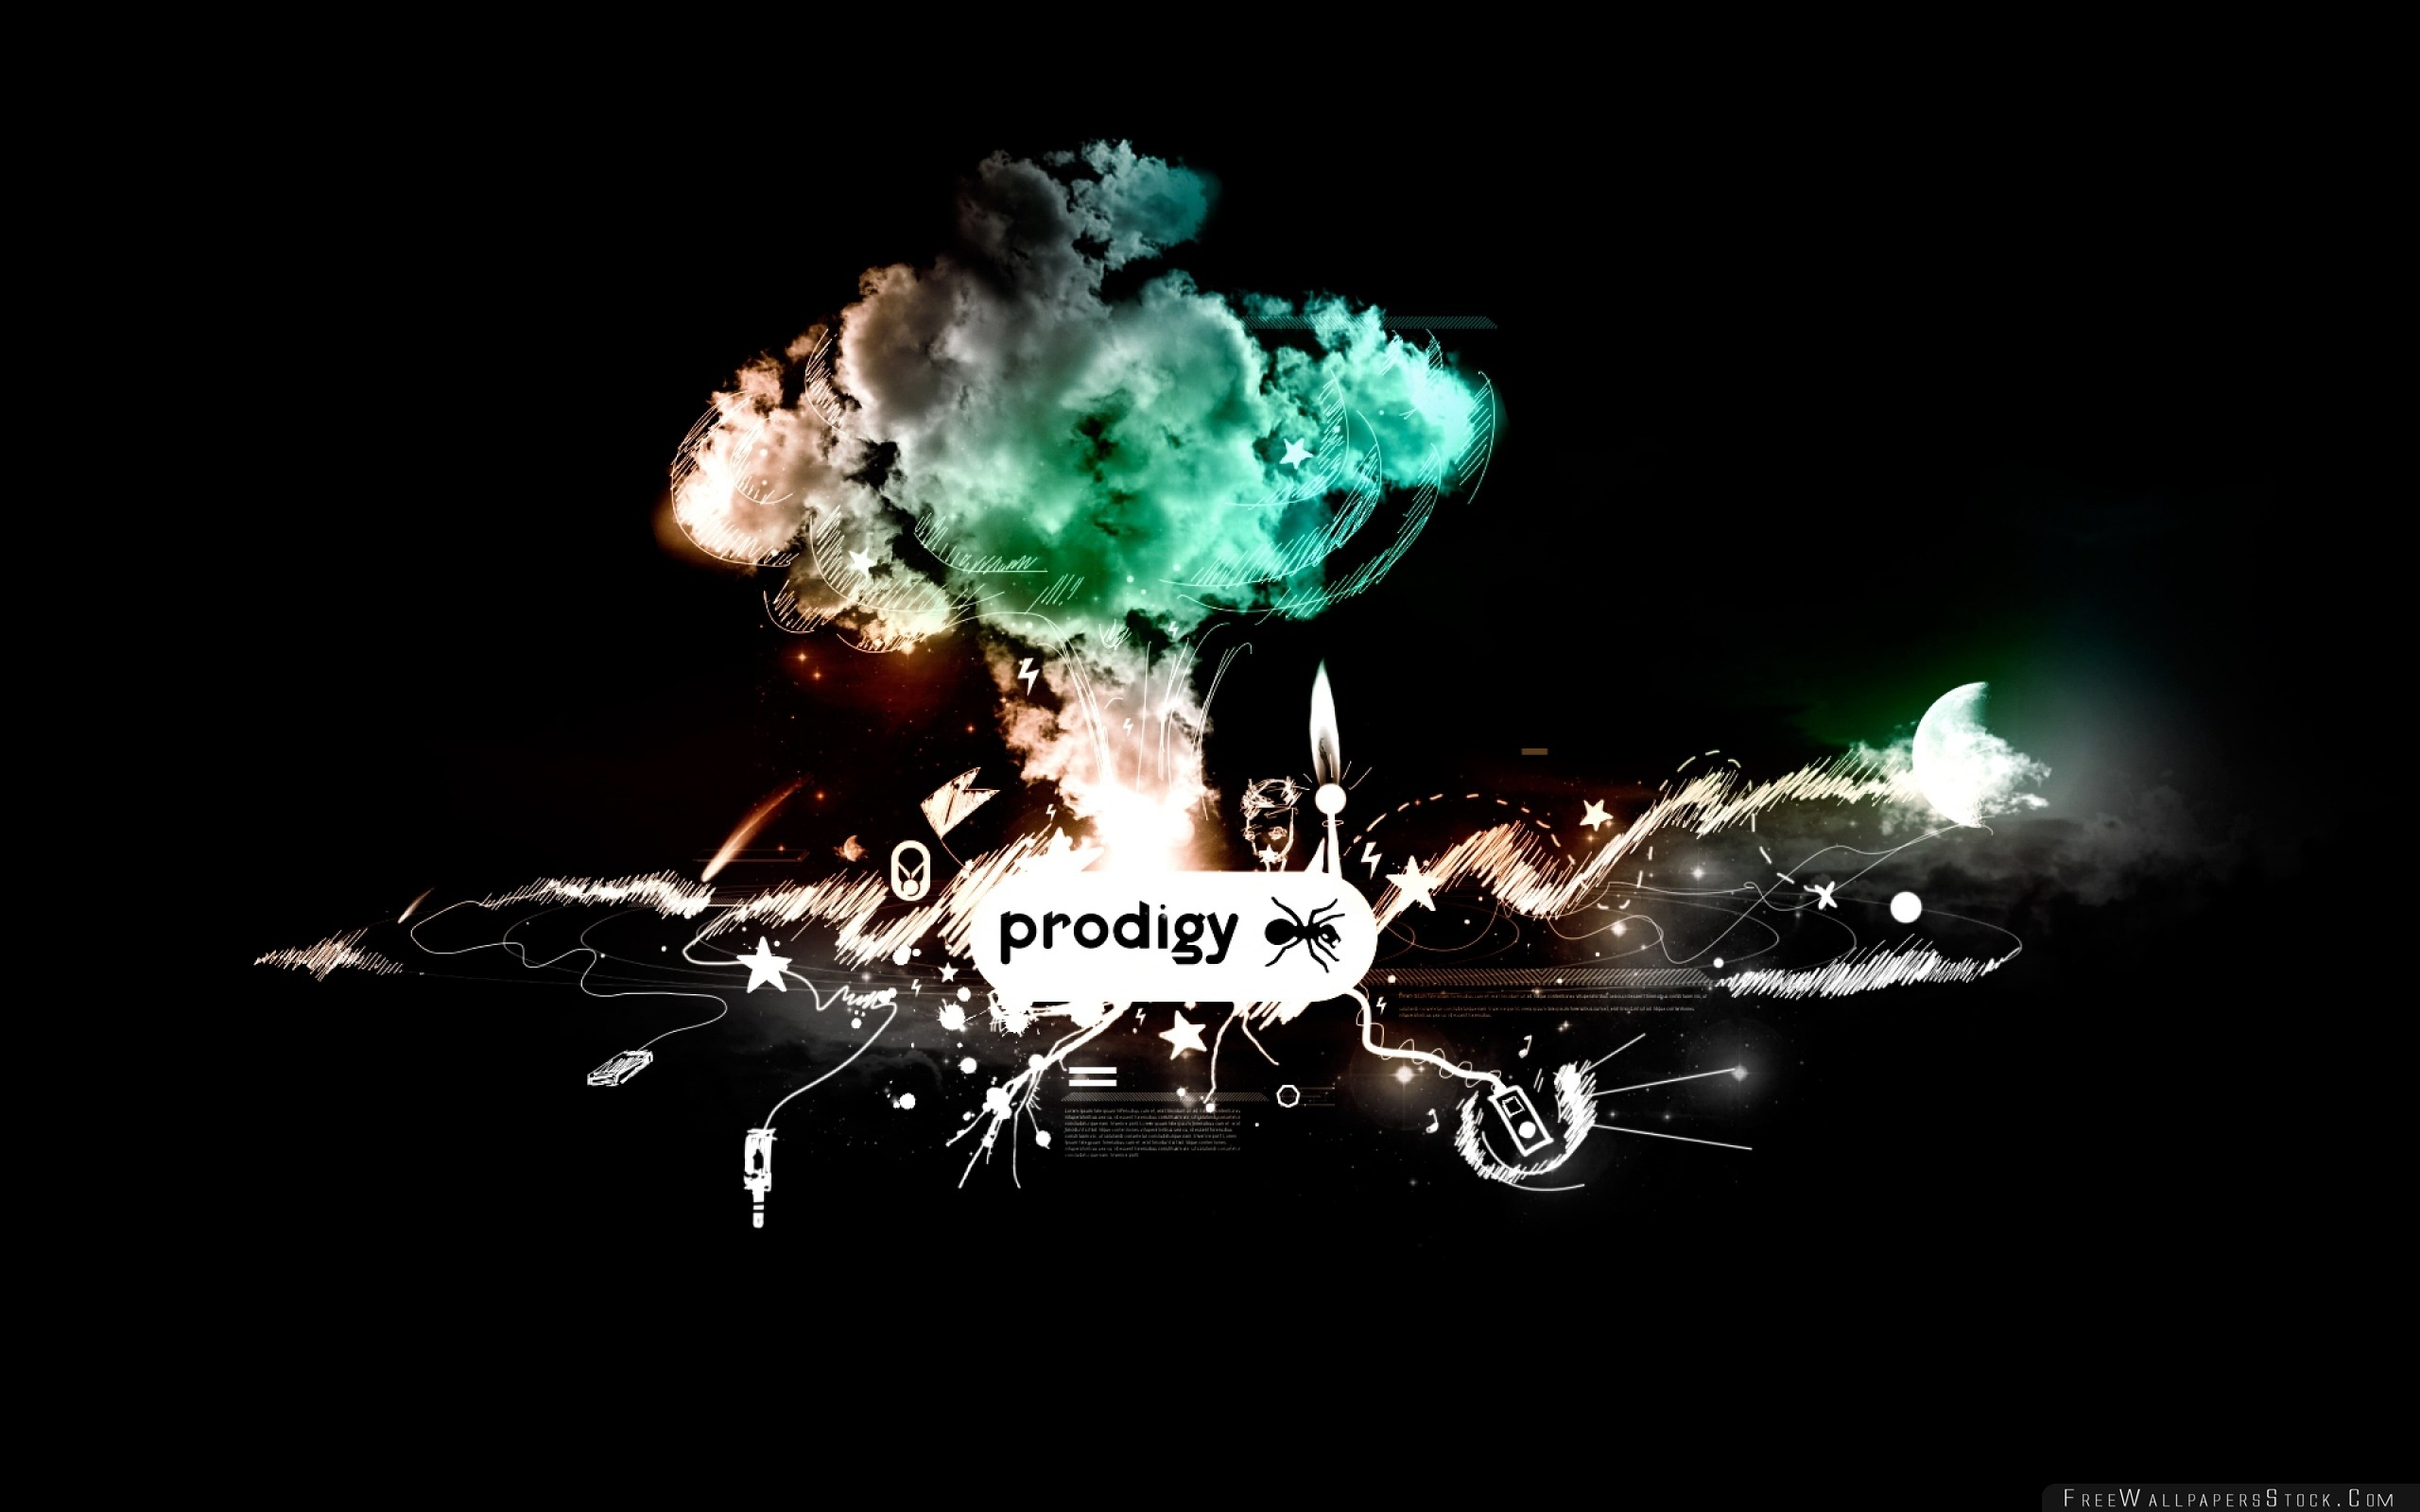 Download Free Wallpaper The Prodigy Gralhics Ant Items Smoke